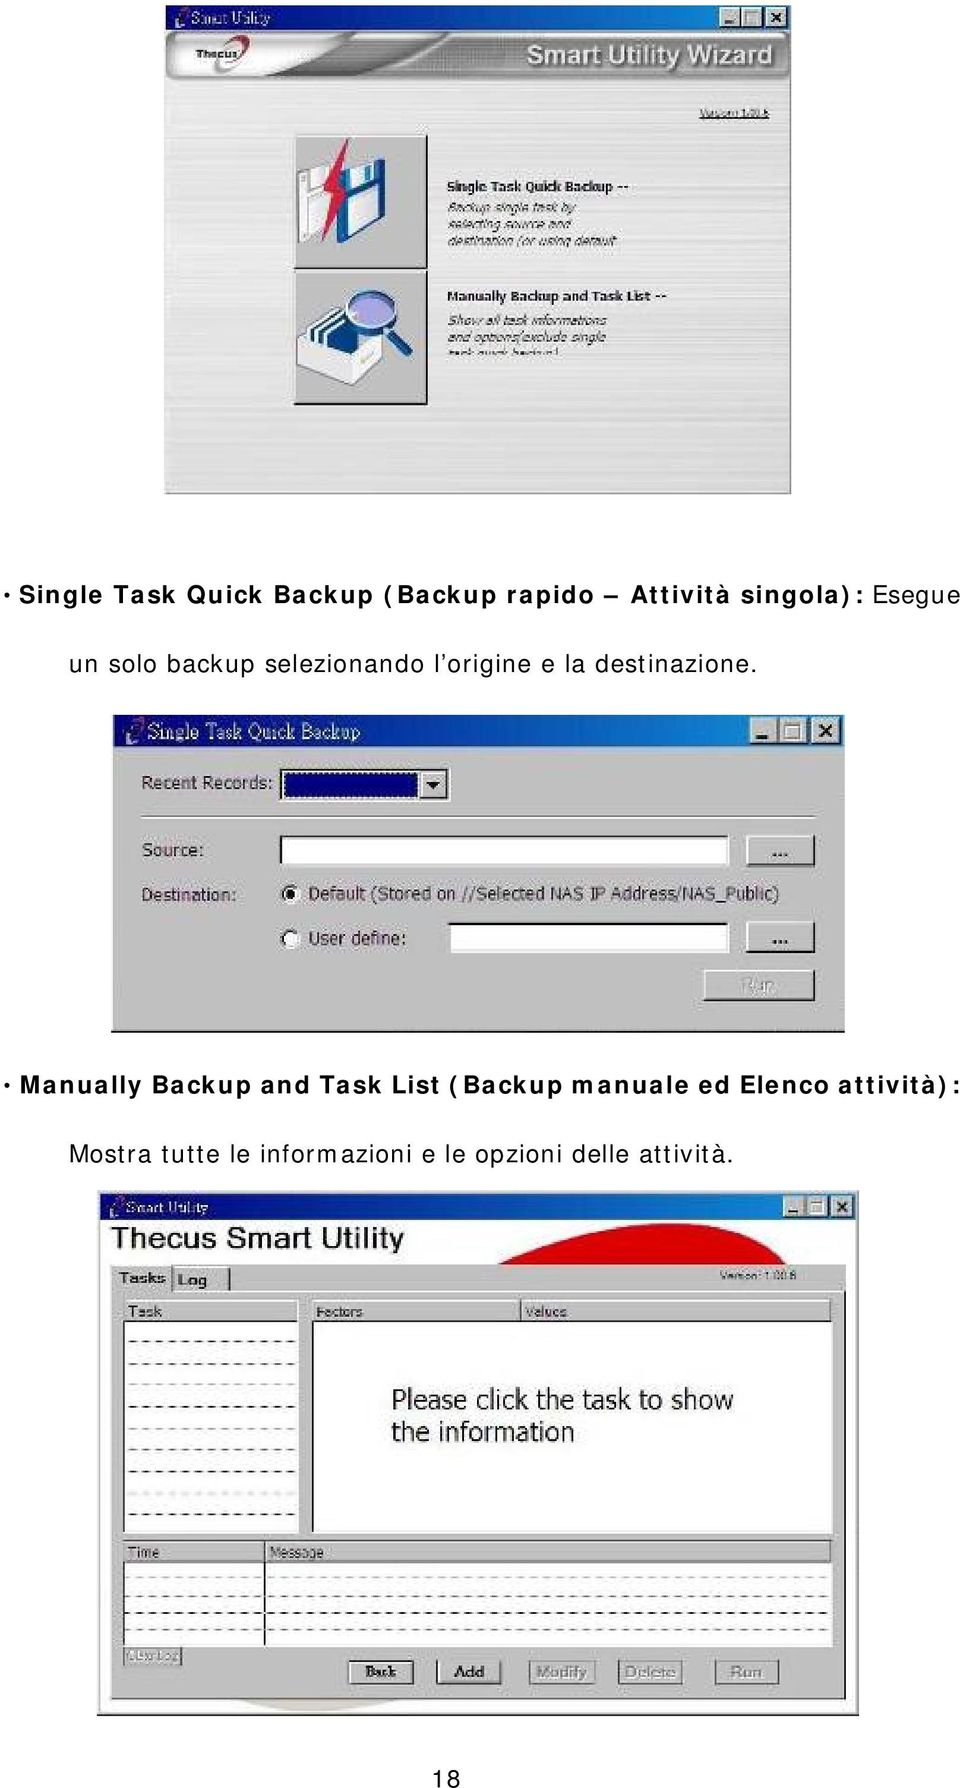 Manually Backup and Task List (Backup manuale ed Elenco